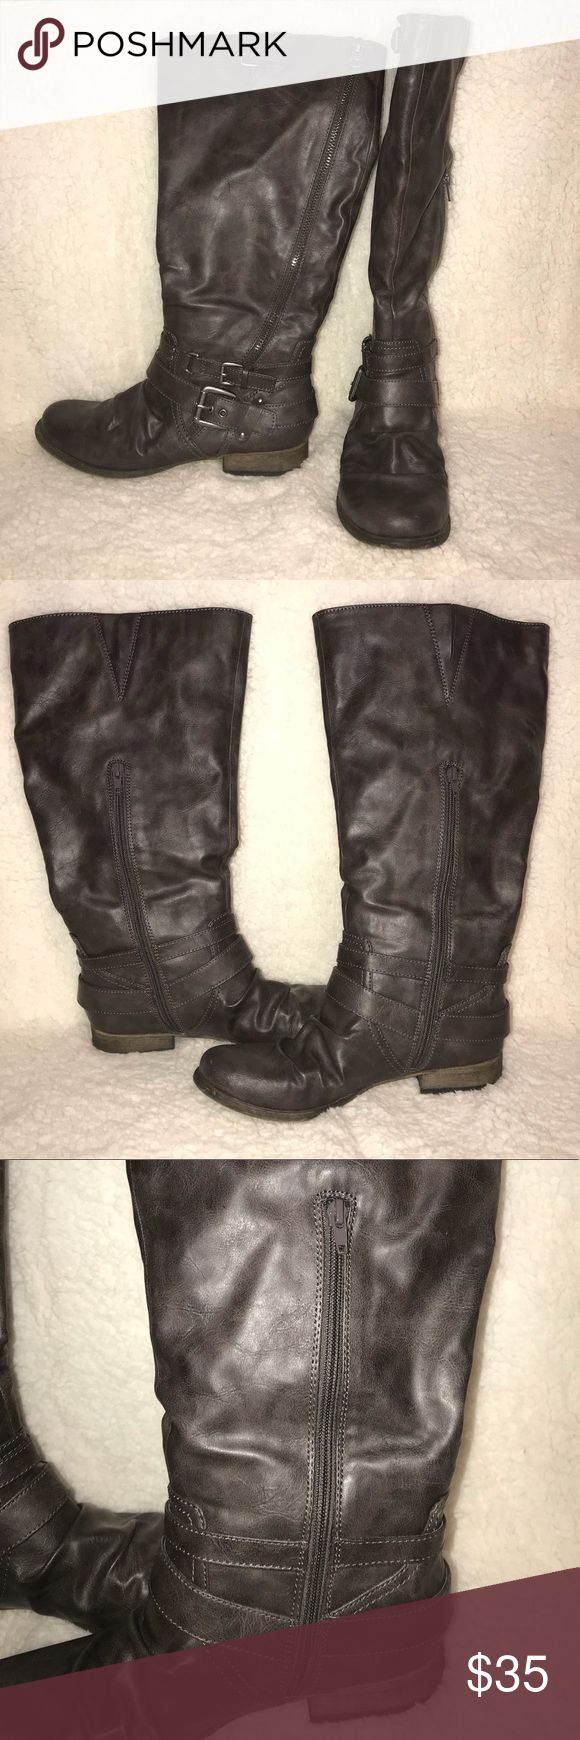 Carlos Santana wide calf boots Dark grey Carlos Santana boots. New, only worn to try on. Size 9.5 wide calf. Carlos Santana Shoes Heeled Boots